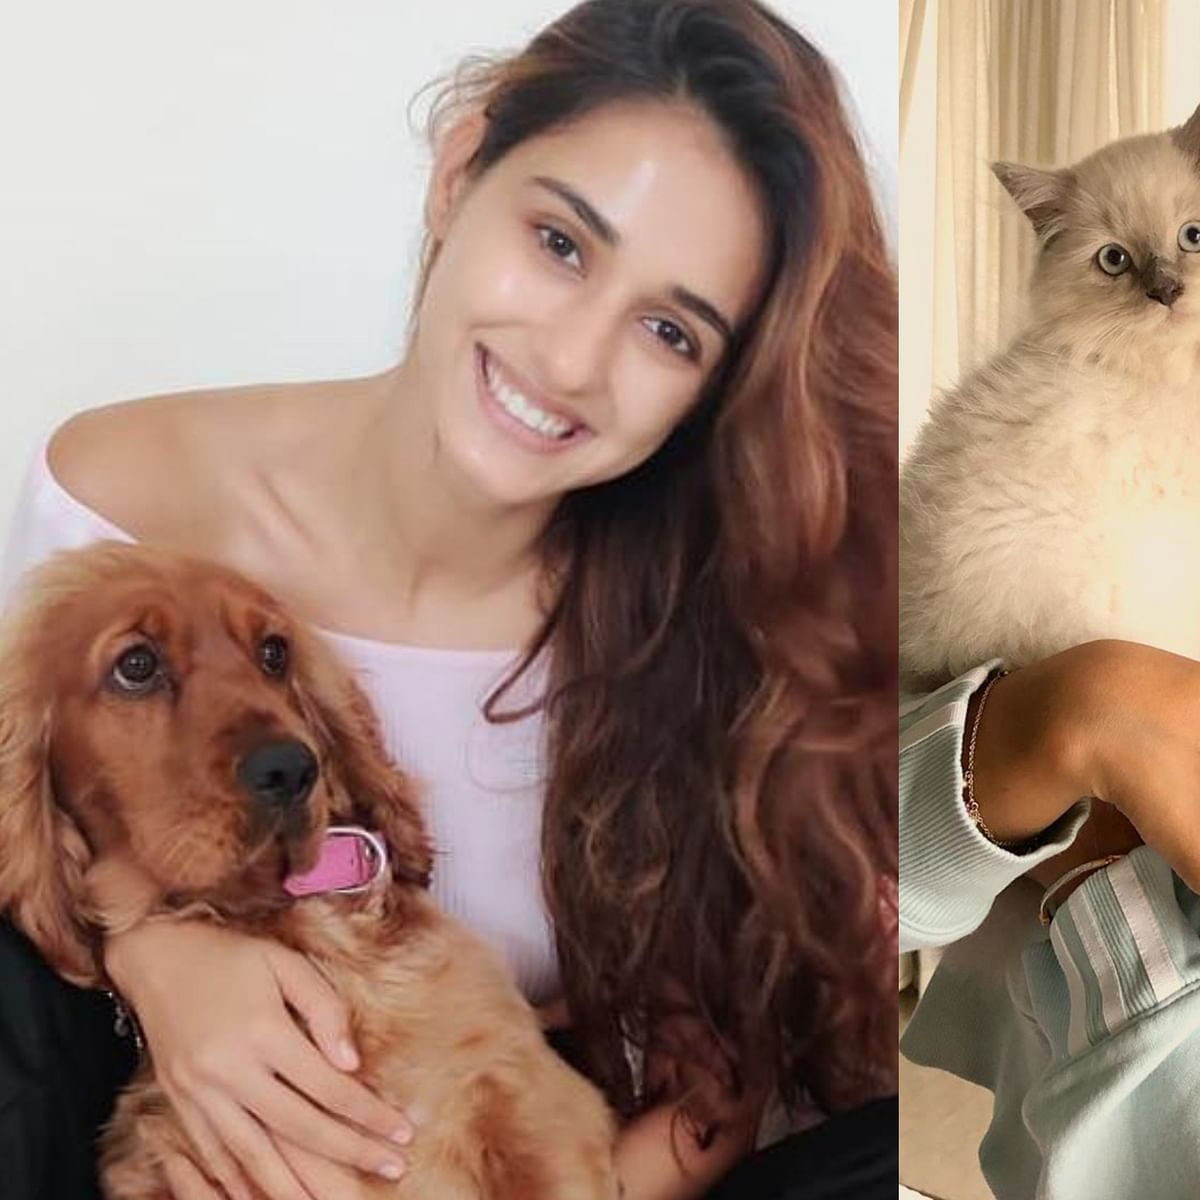 Disha Patani says 'best therapy has fur and four legs', urges fans to raise voice against animal cruelty